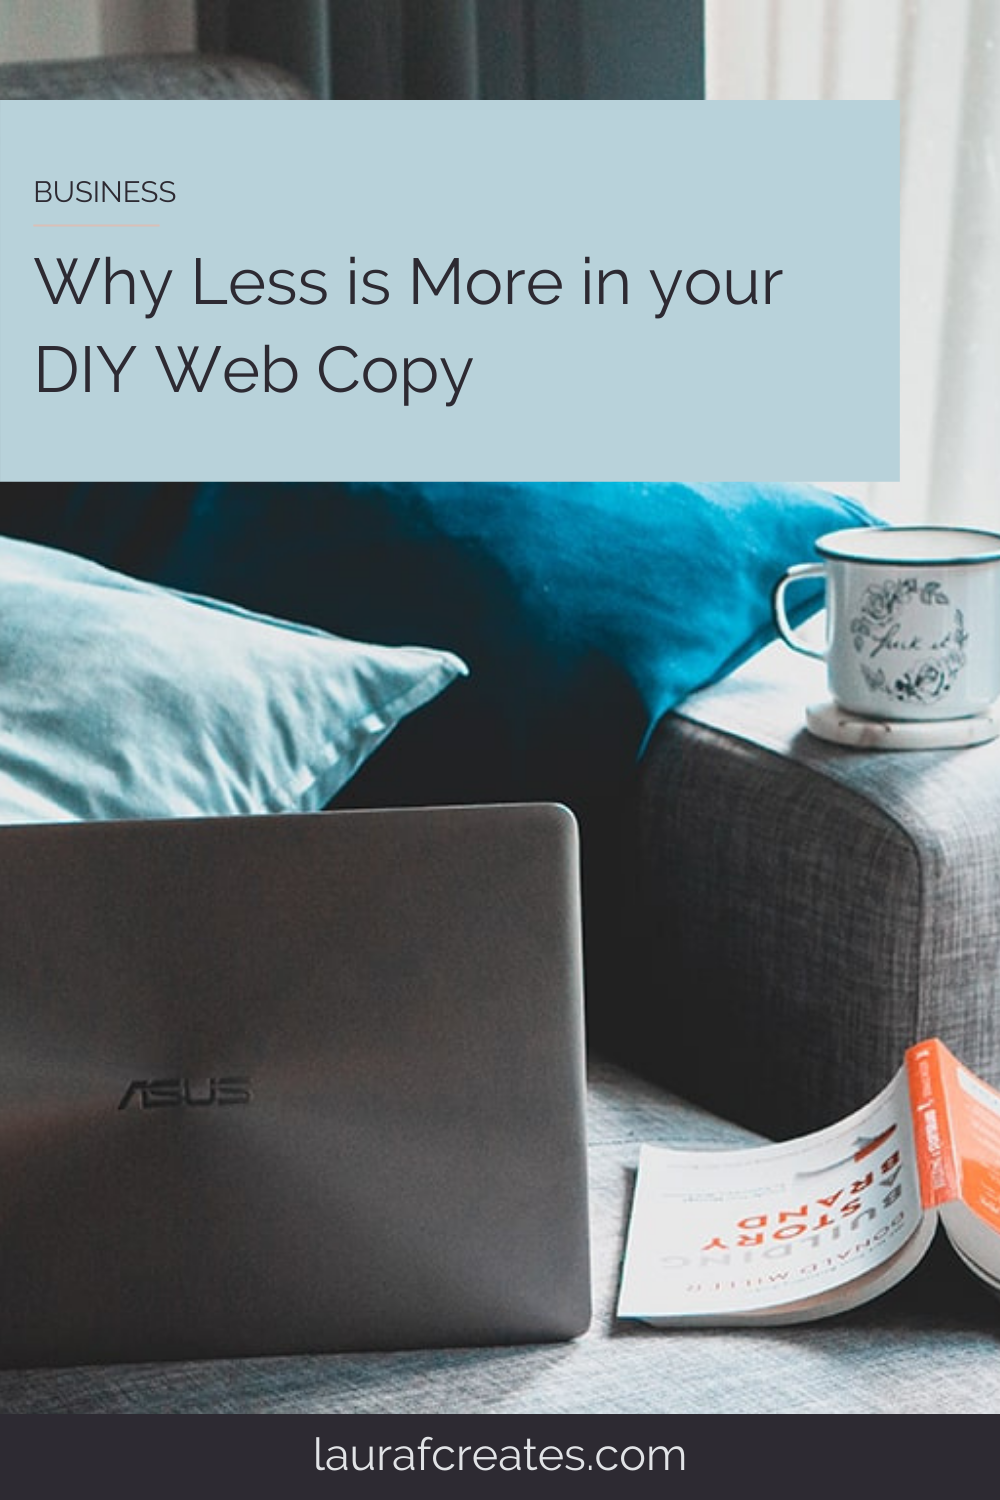 Why Less is More in your DIY Web Copy by Laura F Creates. This blog post includes tips for building your website, copywriting tips, business growth tips & branding tips.